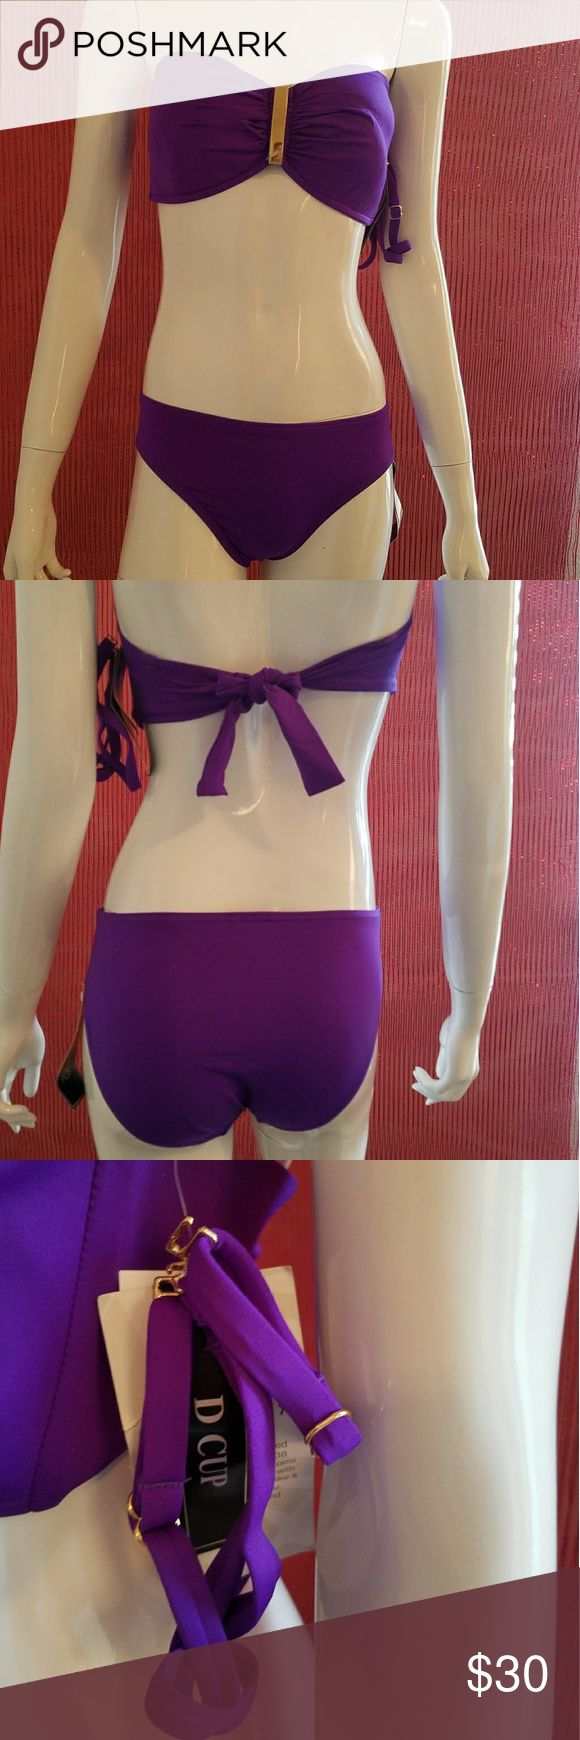 NWT 2Bamboo Bikini Set D cup NWT 2Bamboo Bikini Set. This is bra sized swimwear. Top fits from 32D-34D. Bottom is size: small. Top has nice gold accent in middle. Has optional straps.  Top has MSRP of $65 & Bottom has MSRP of $37. ** Sorry, no trades. Please do not post offers in comments ** 2Bamboo Swim Bikinis